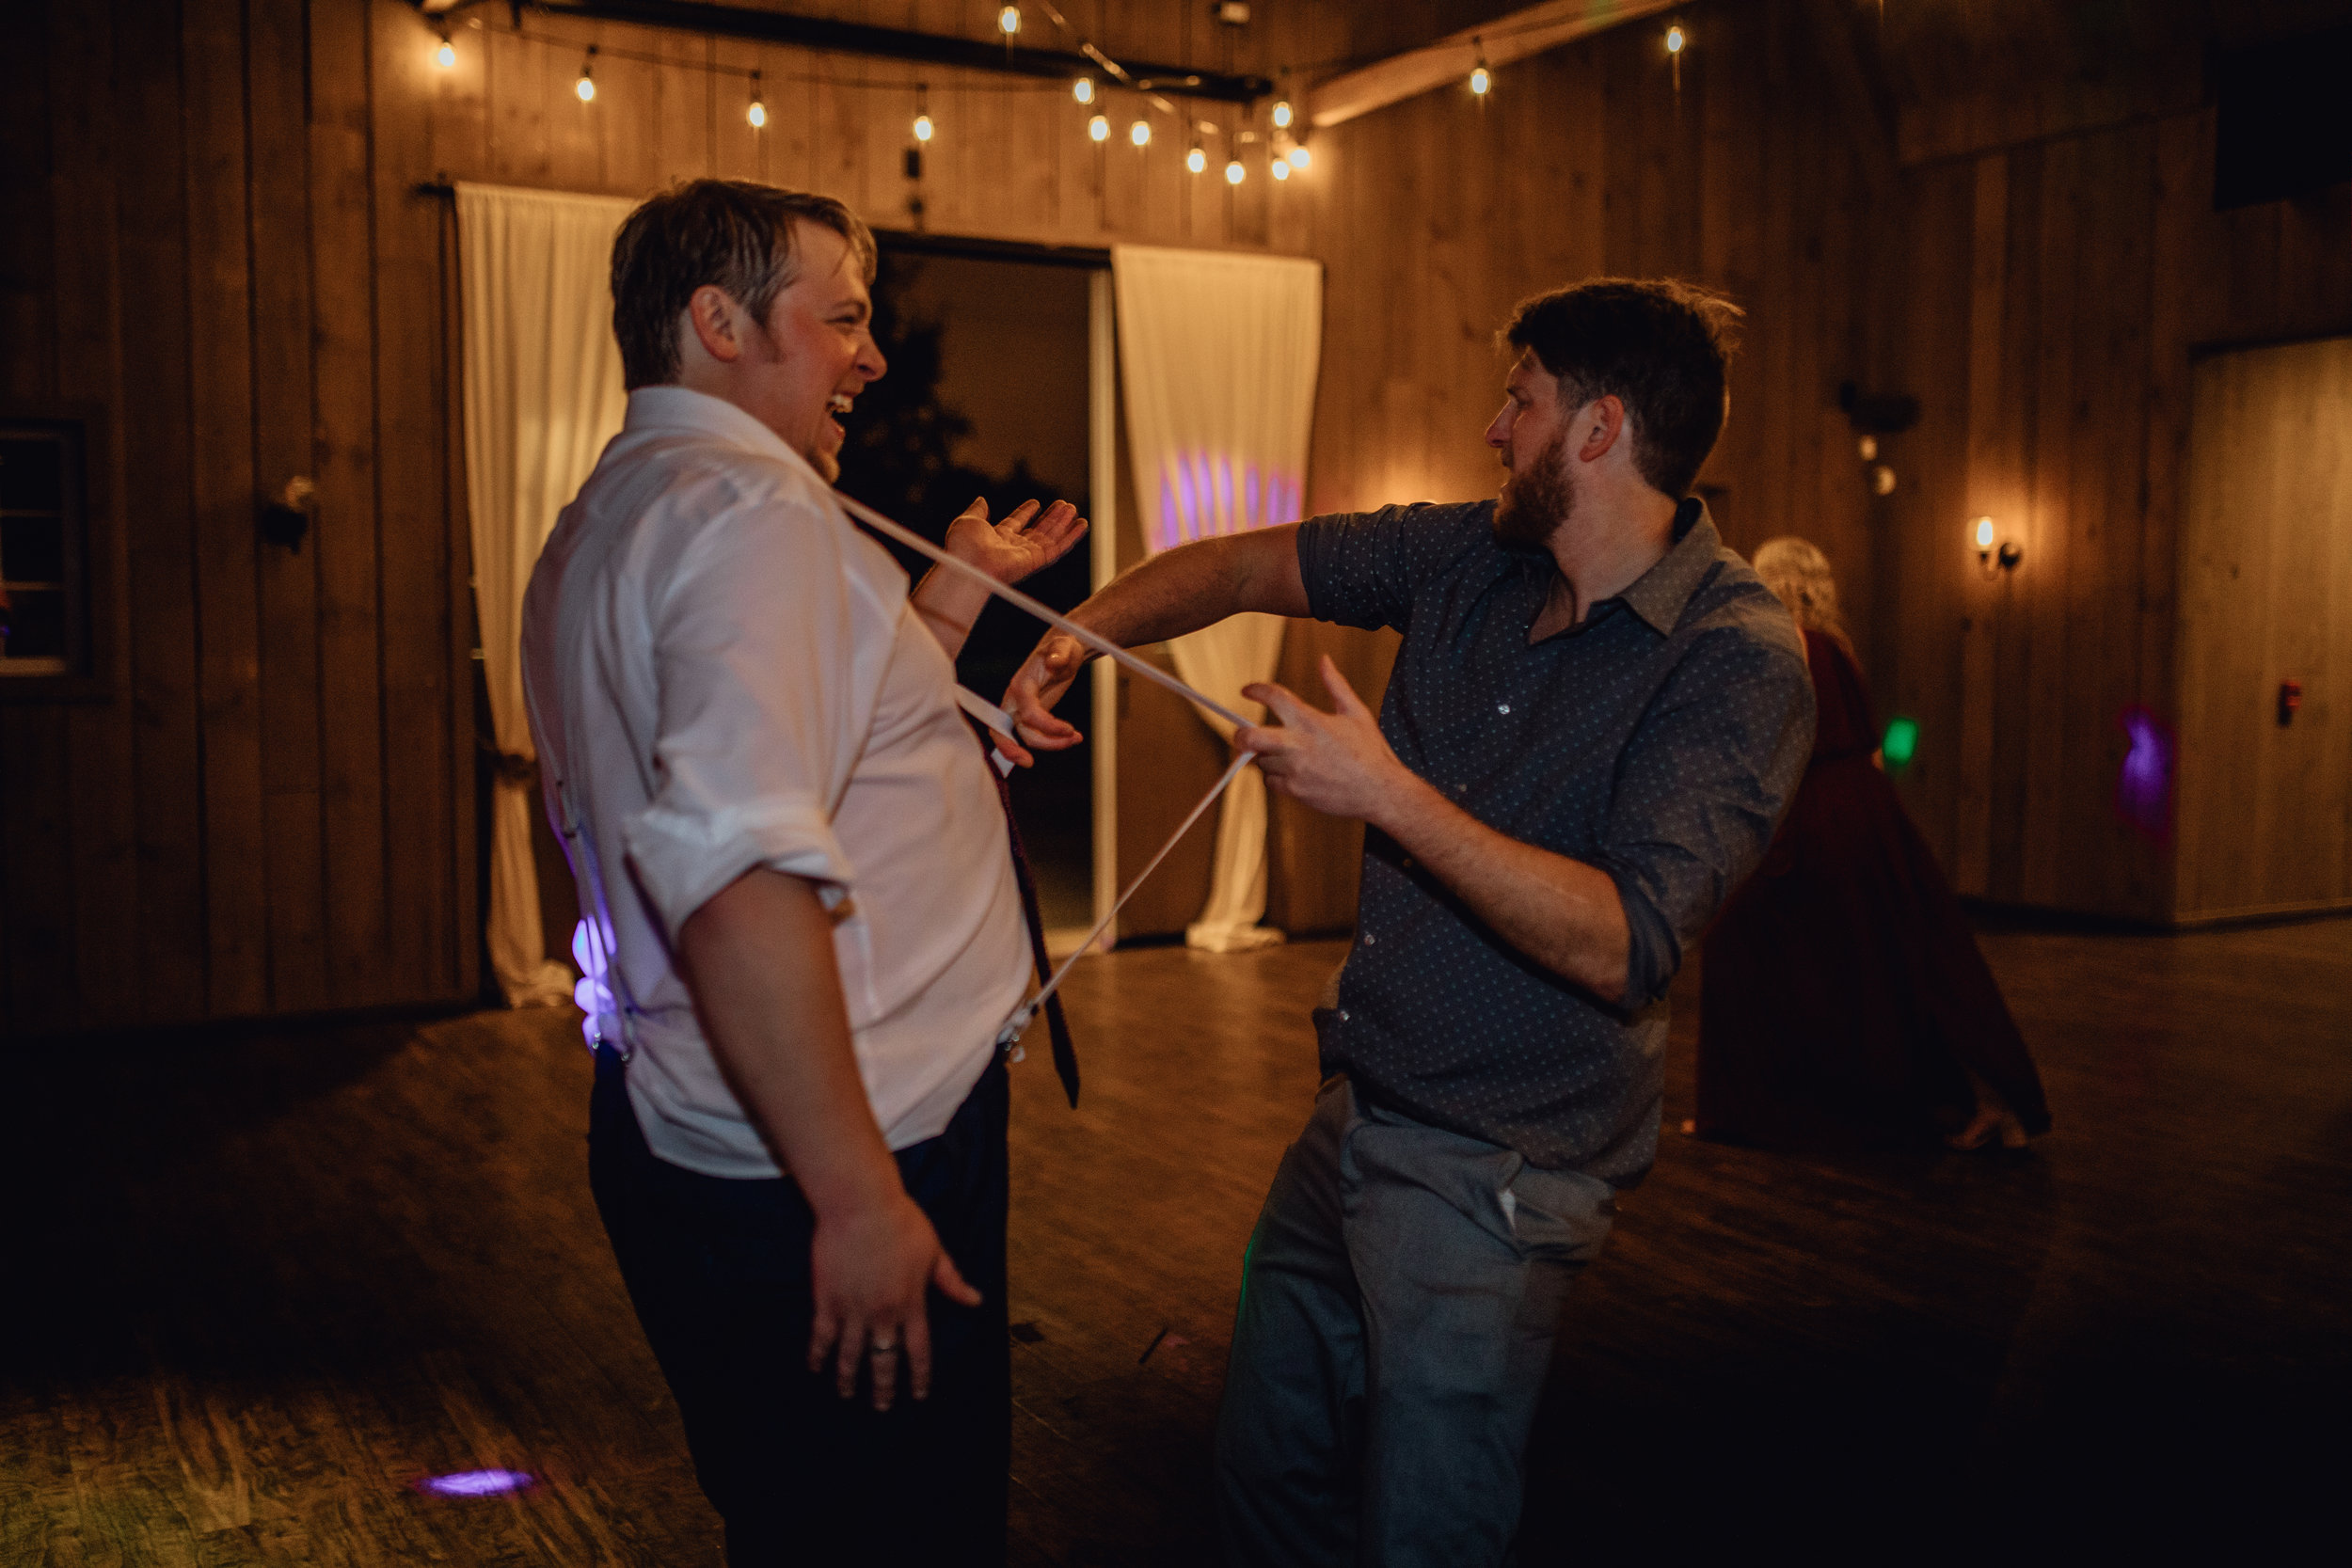 groomsmen-dancing-at-rustic-manor-1848.jpg